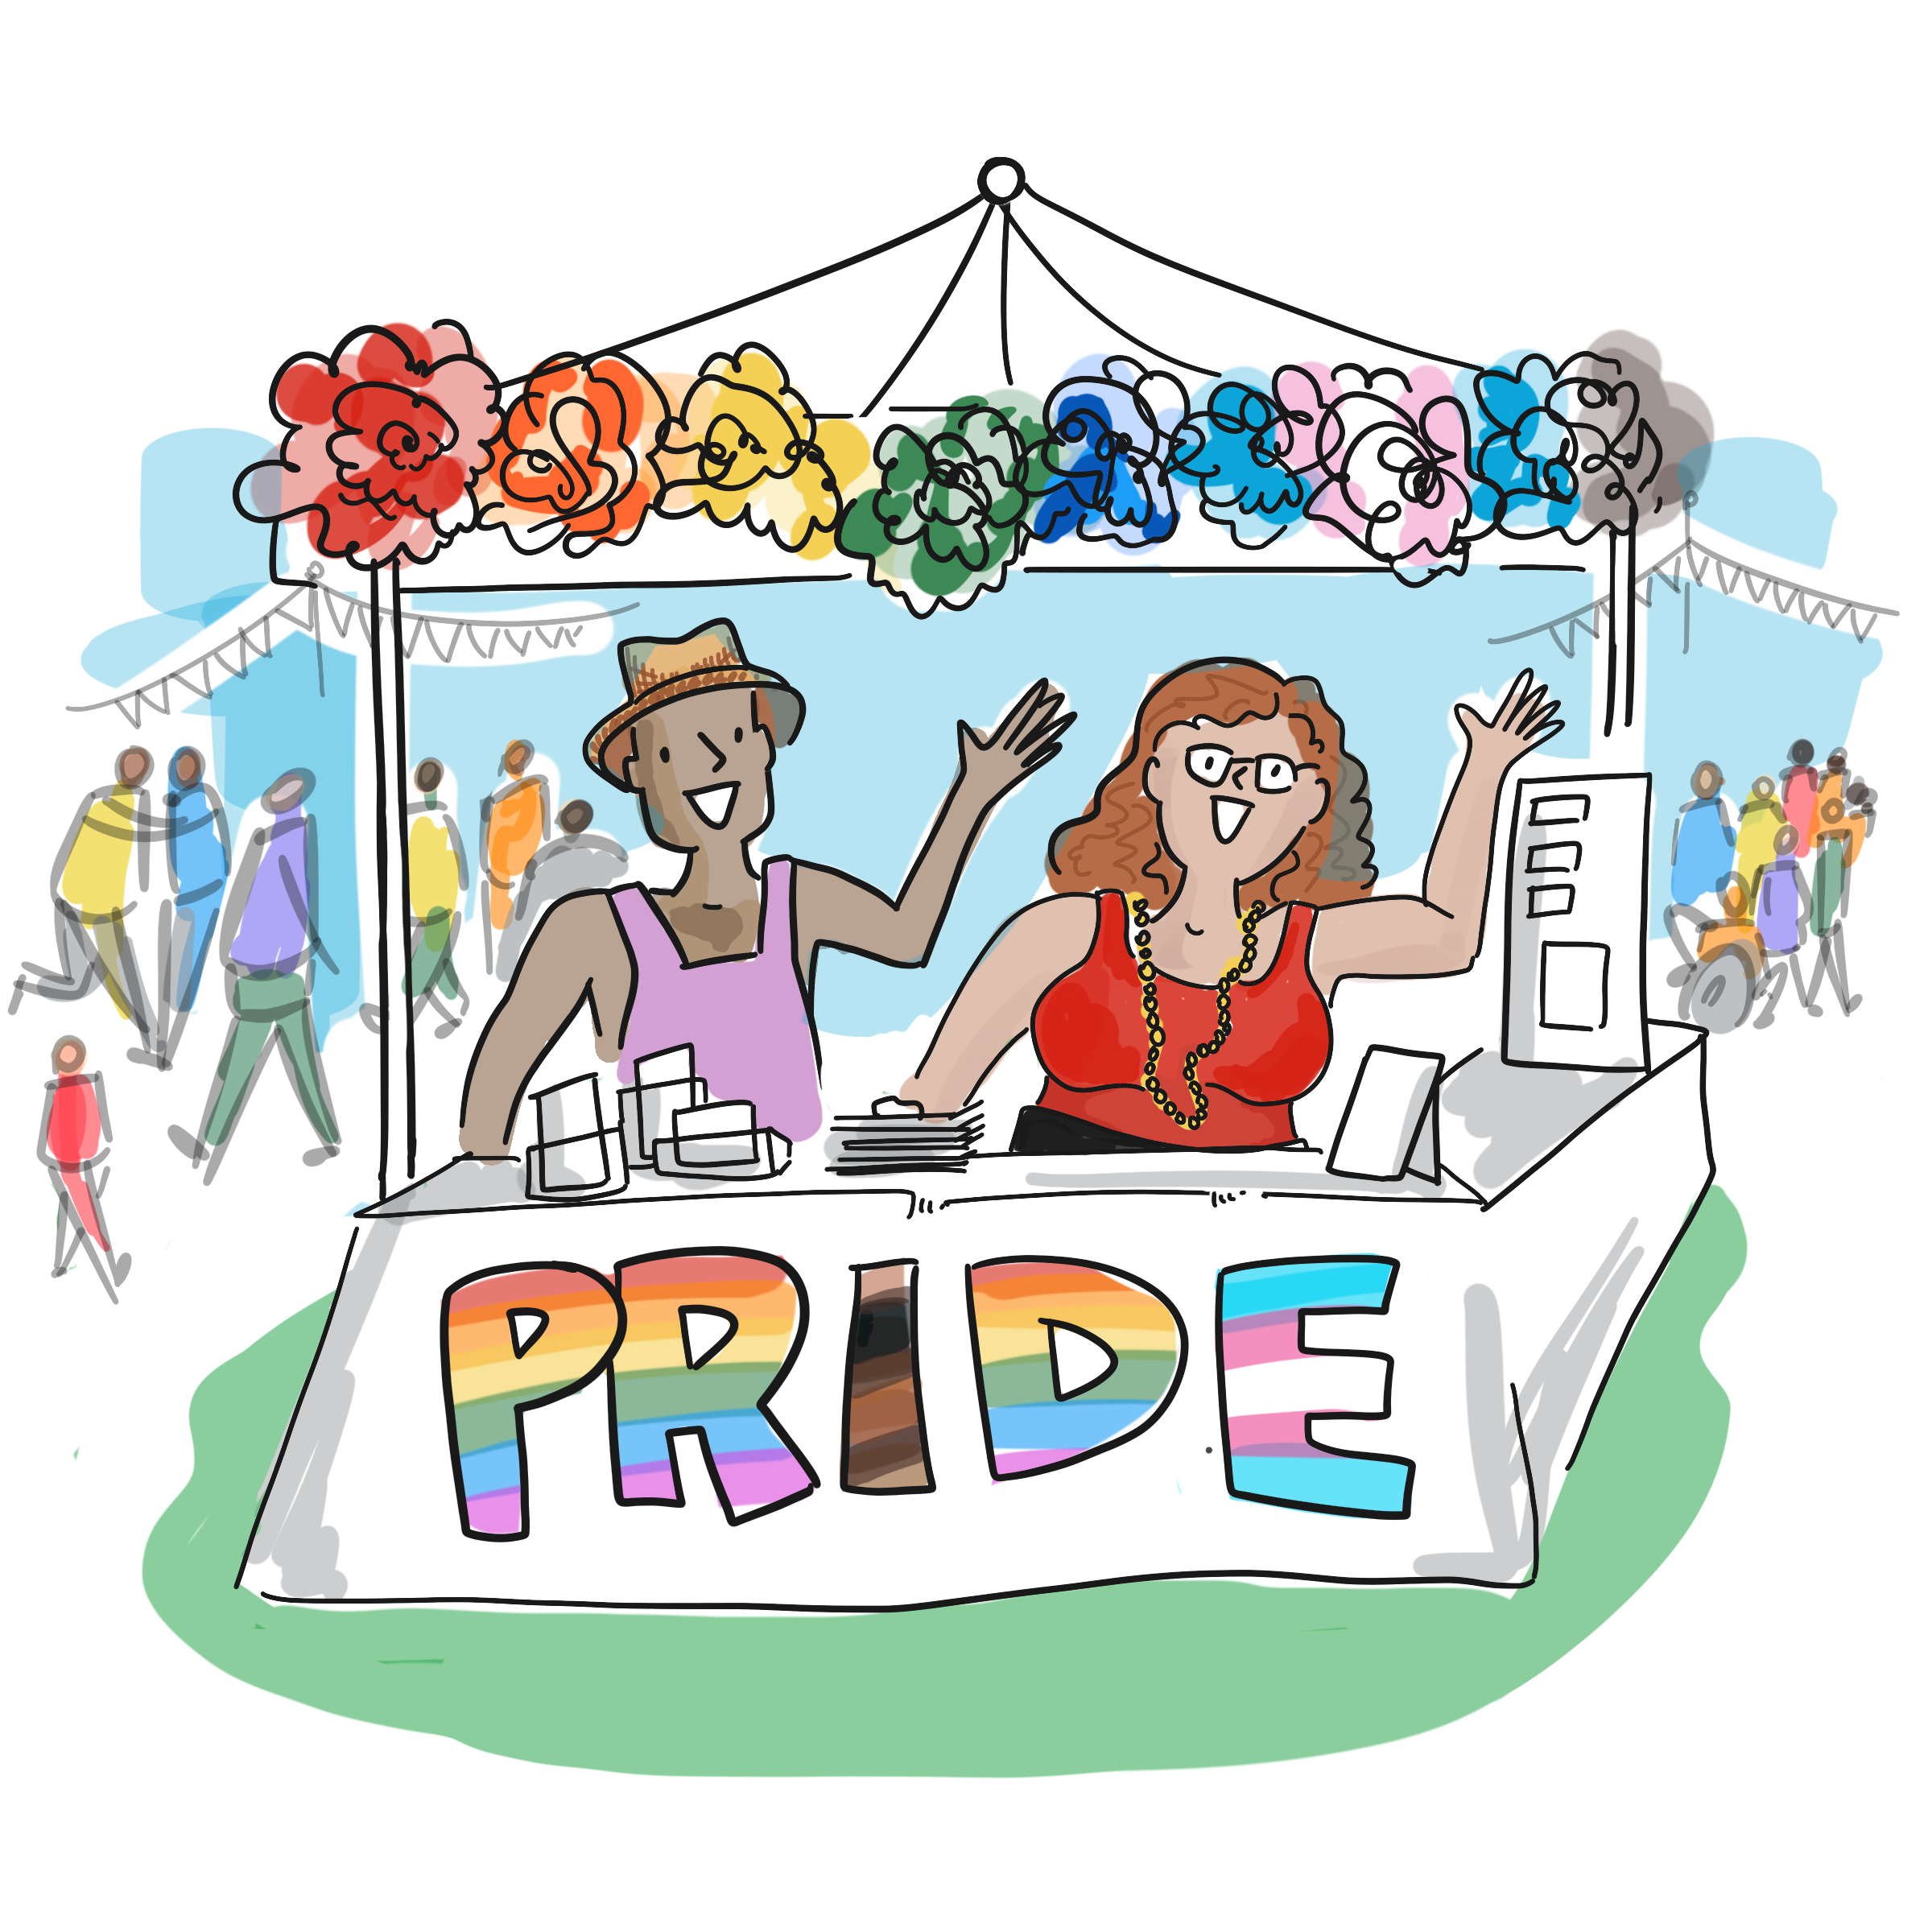 10 TCBC Peer-Community PRIDE booth v3.png